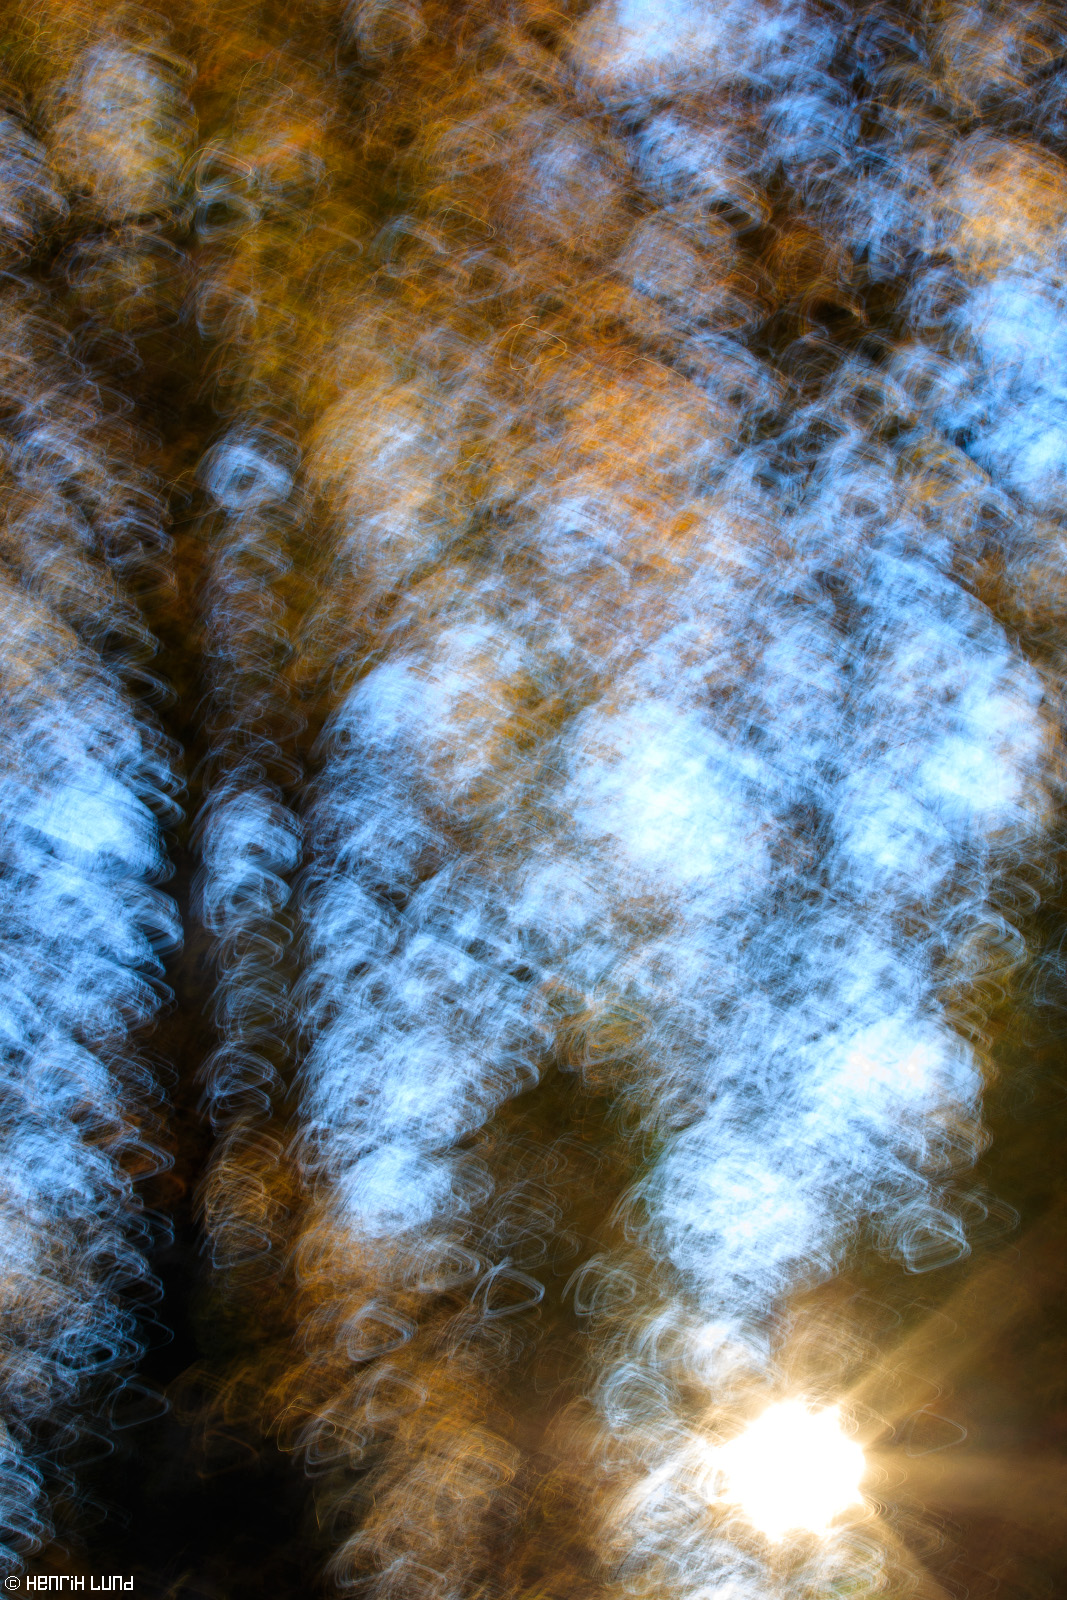 Camera movement made during exposure to create a abstract visualization of autumn light. Lappträsk, Finland, October 2015.